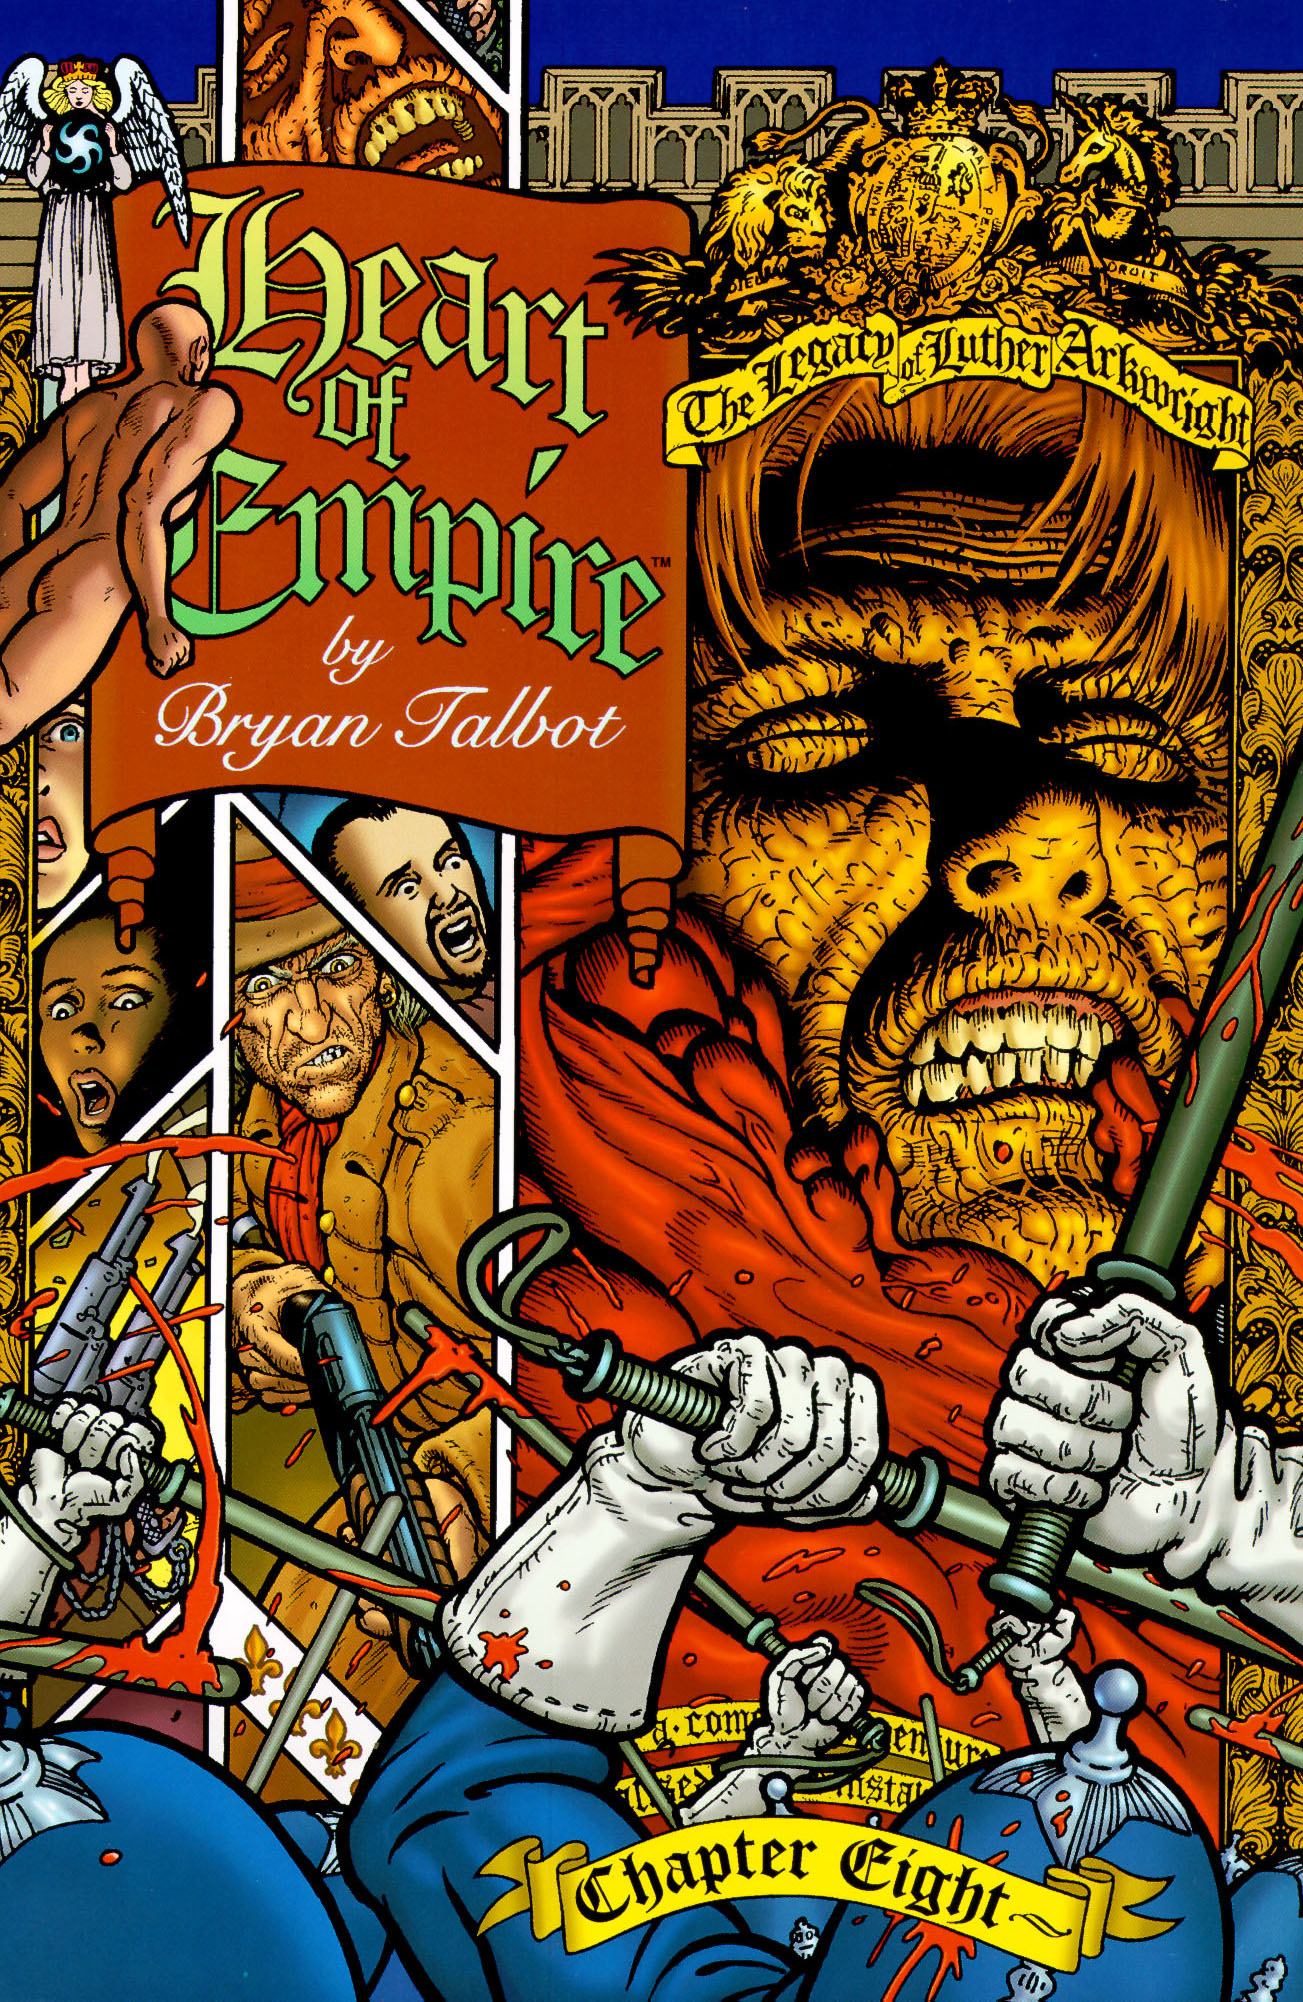 Read online Heart of Empire comic -  Issue #8 - 1